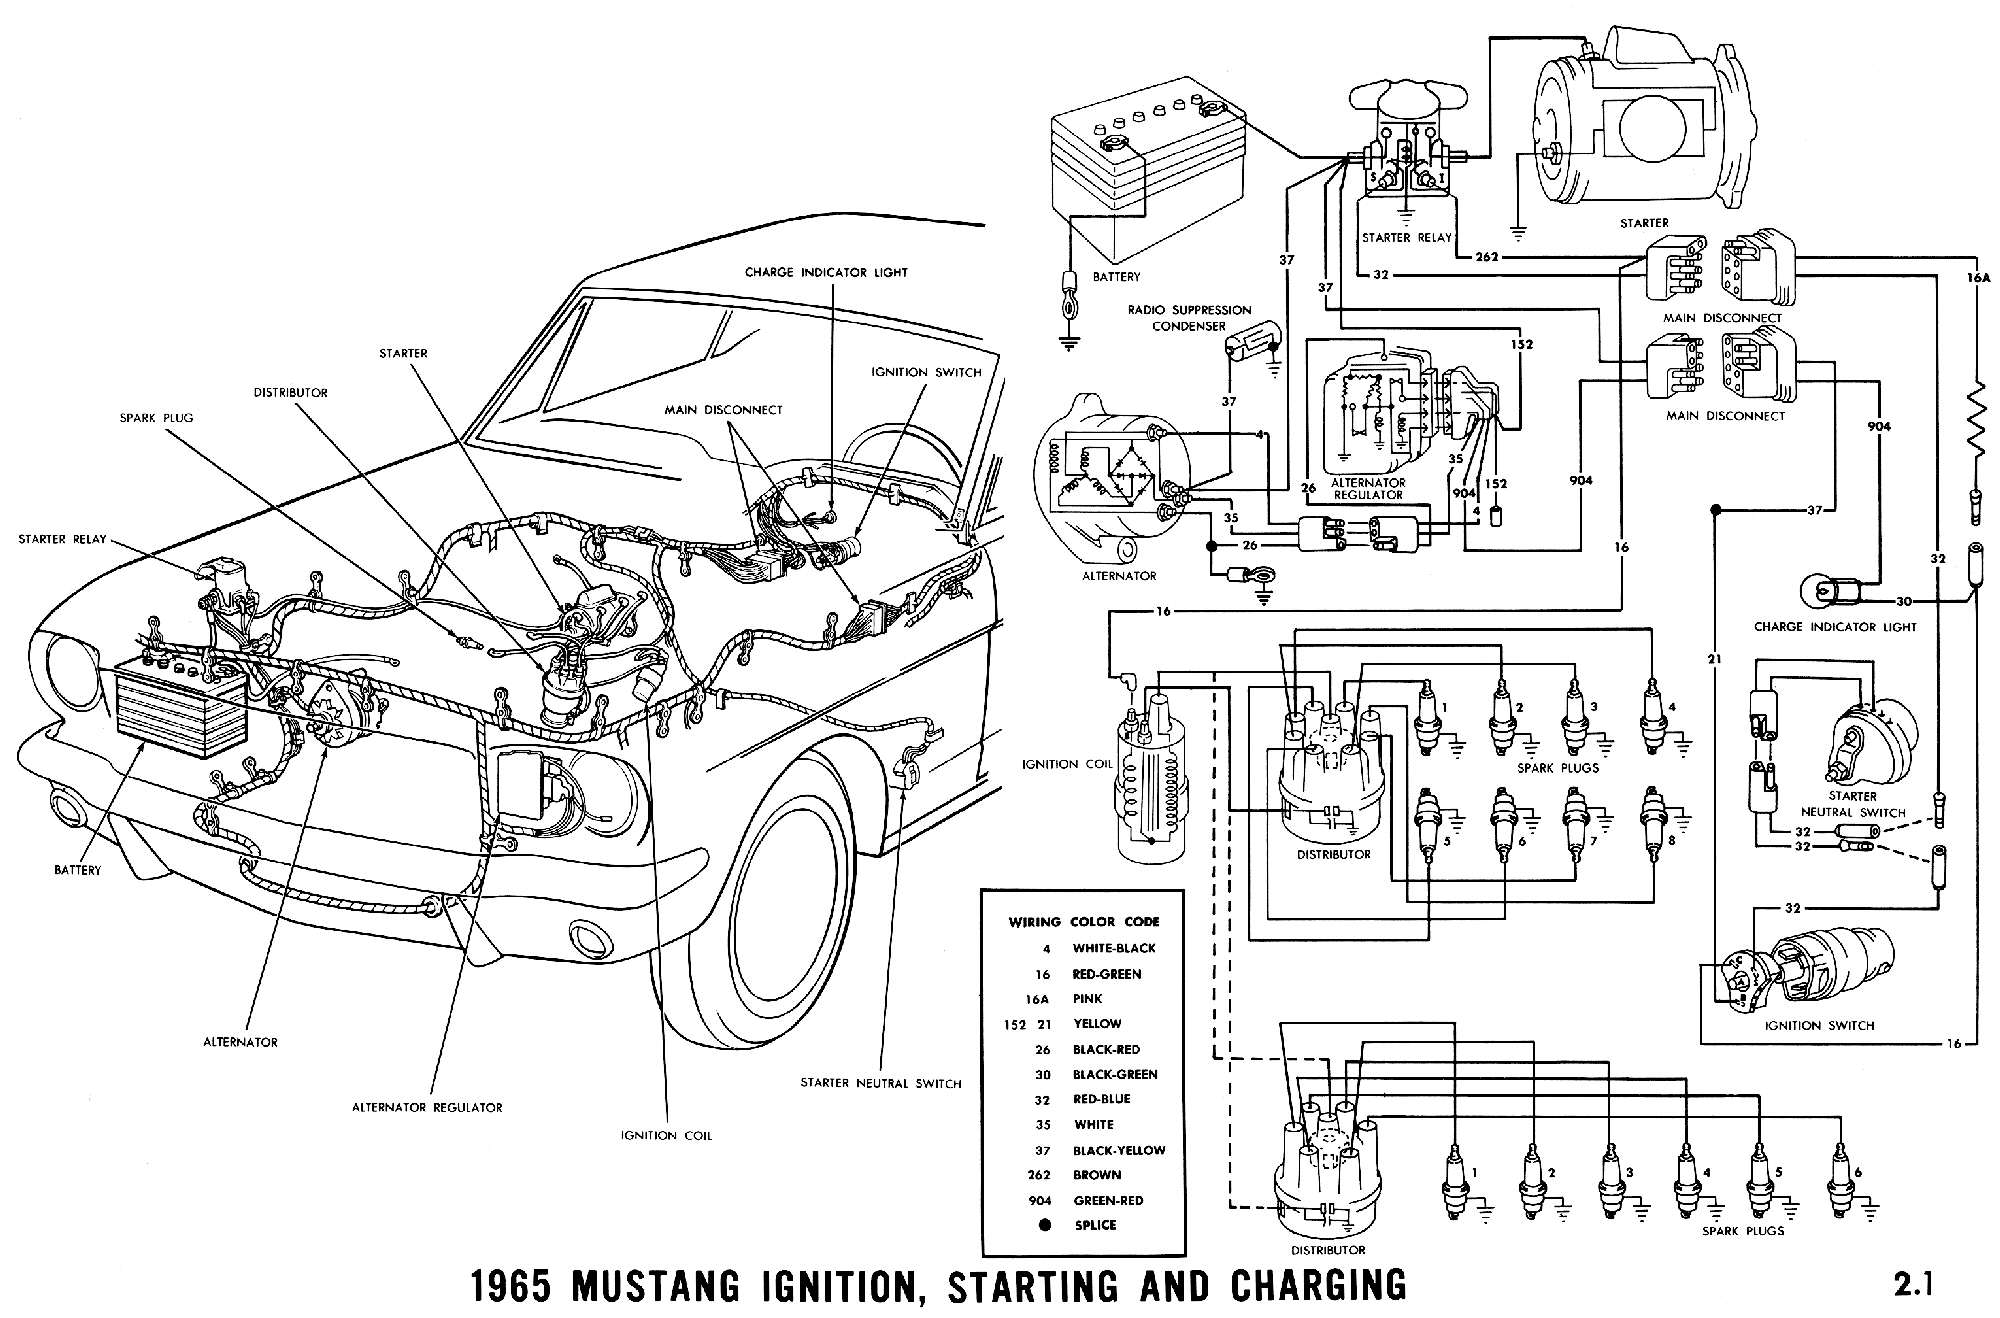 1965c 1965 mustang wiring diagrams average joe restoration car ignition wiring diagram at suagrazia.org